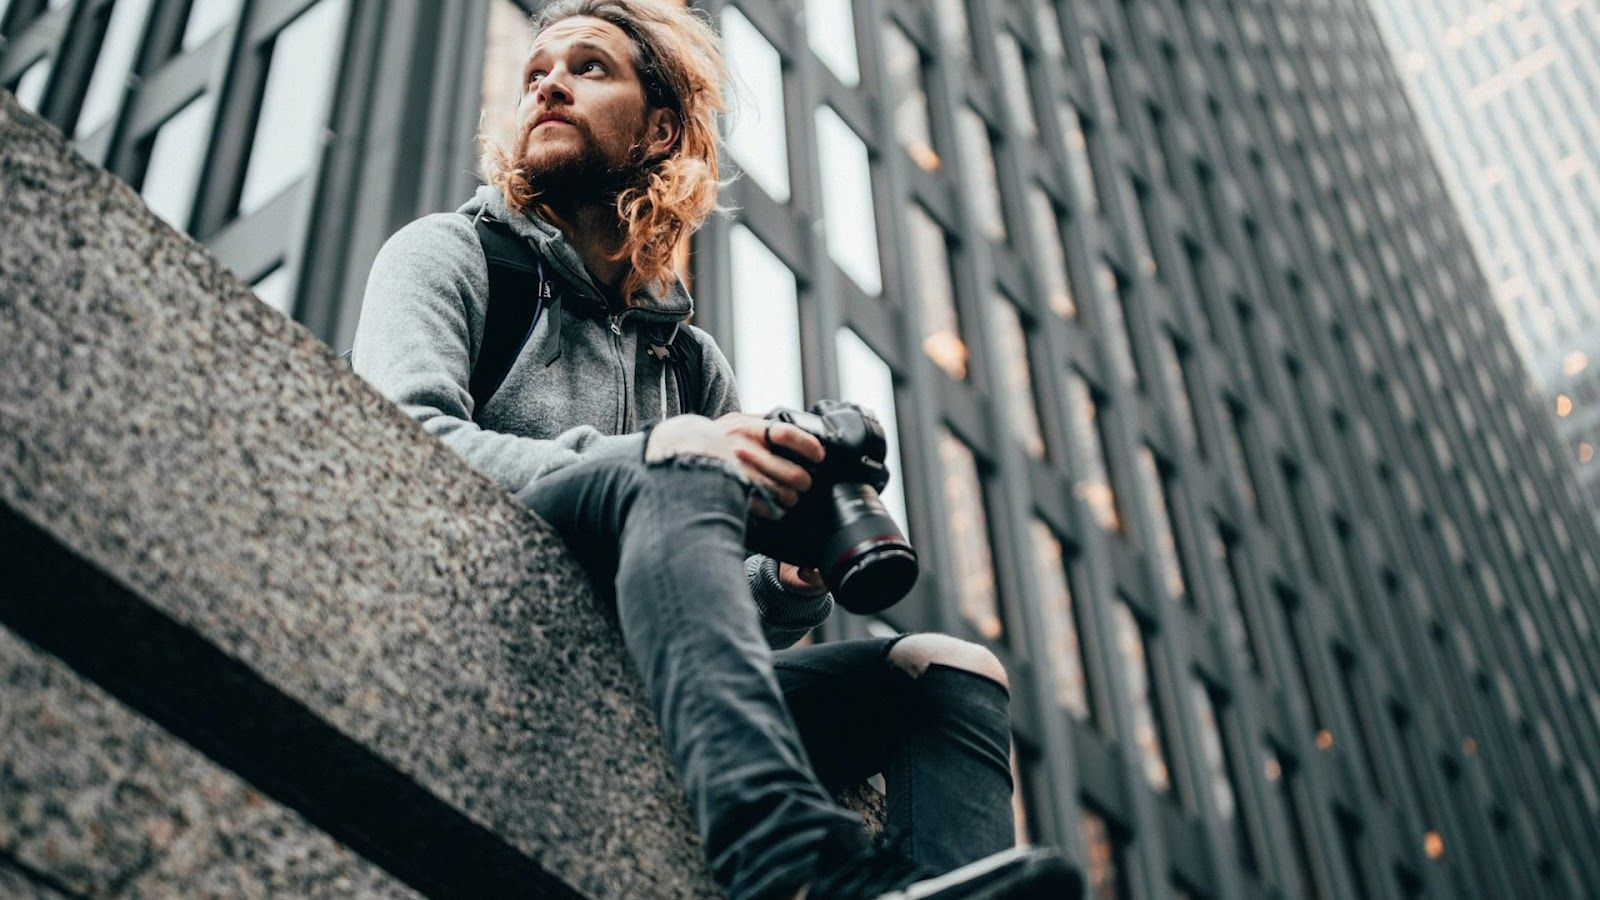 STREET PHOTOGRAPHY with Peter McKinnon | Urban | Photography